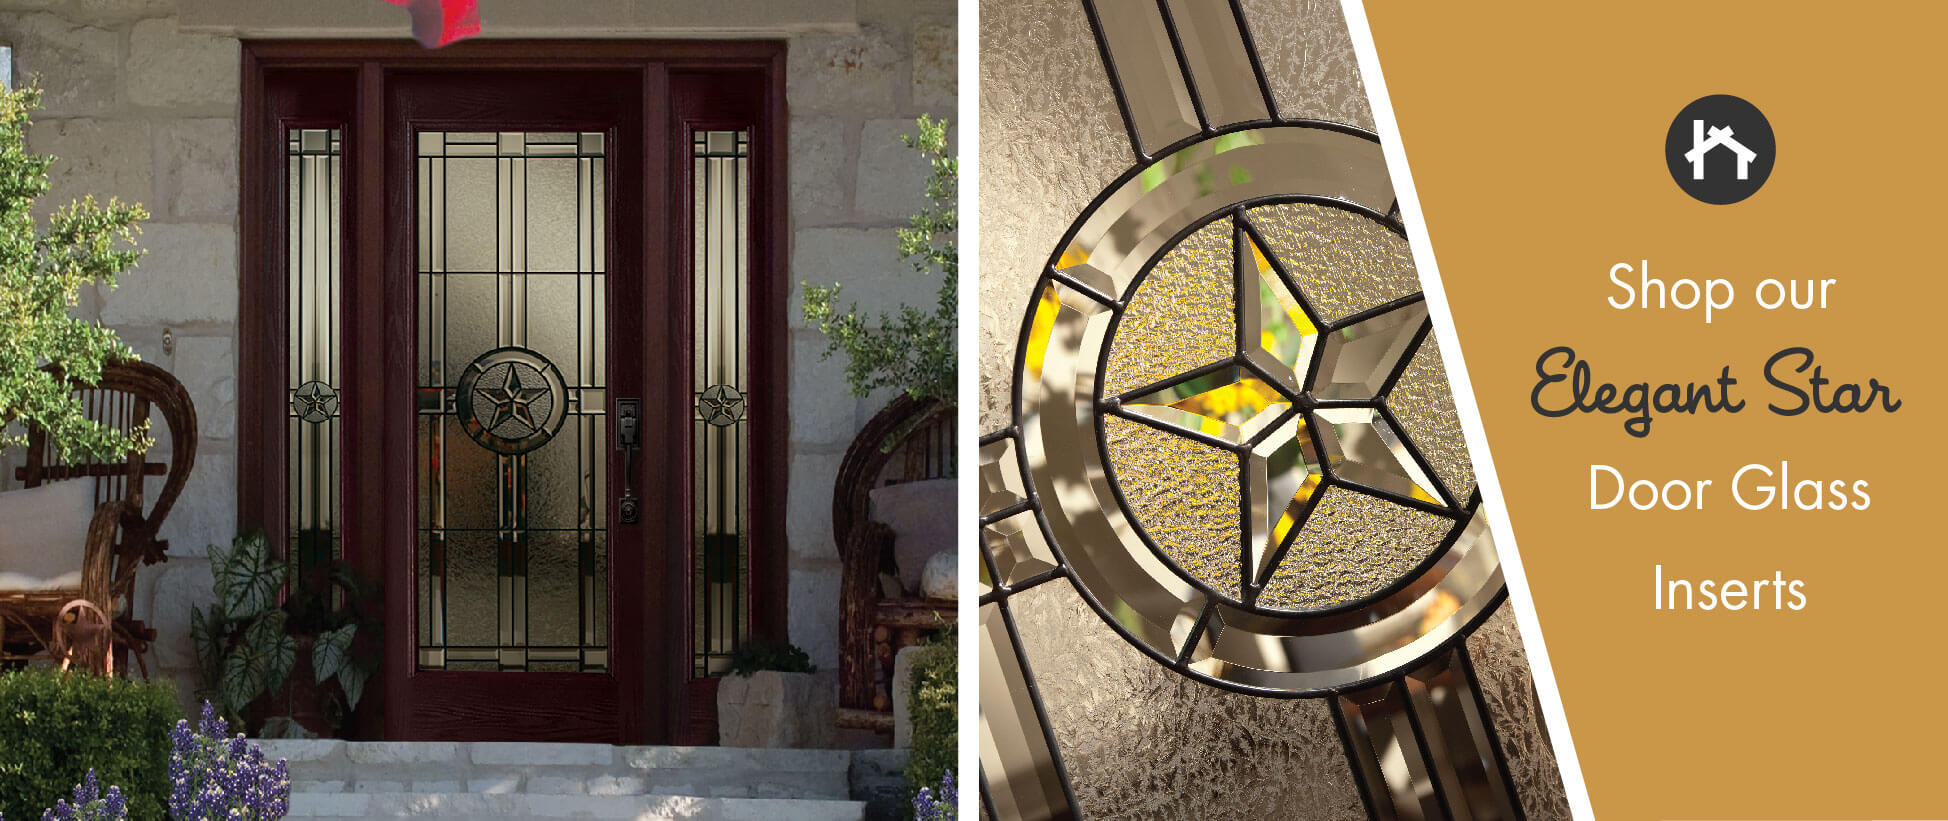 Texas Star Decorative Door Glass Inserts Odl Elegant